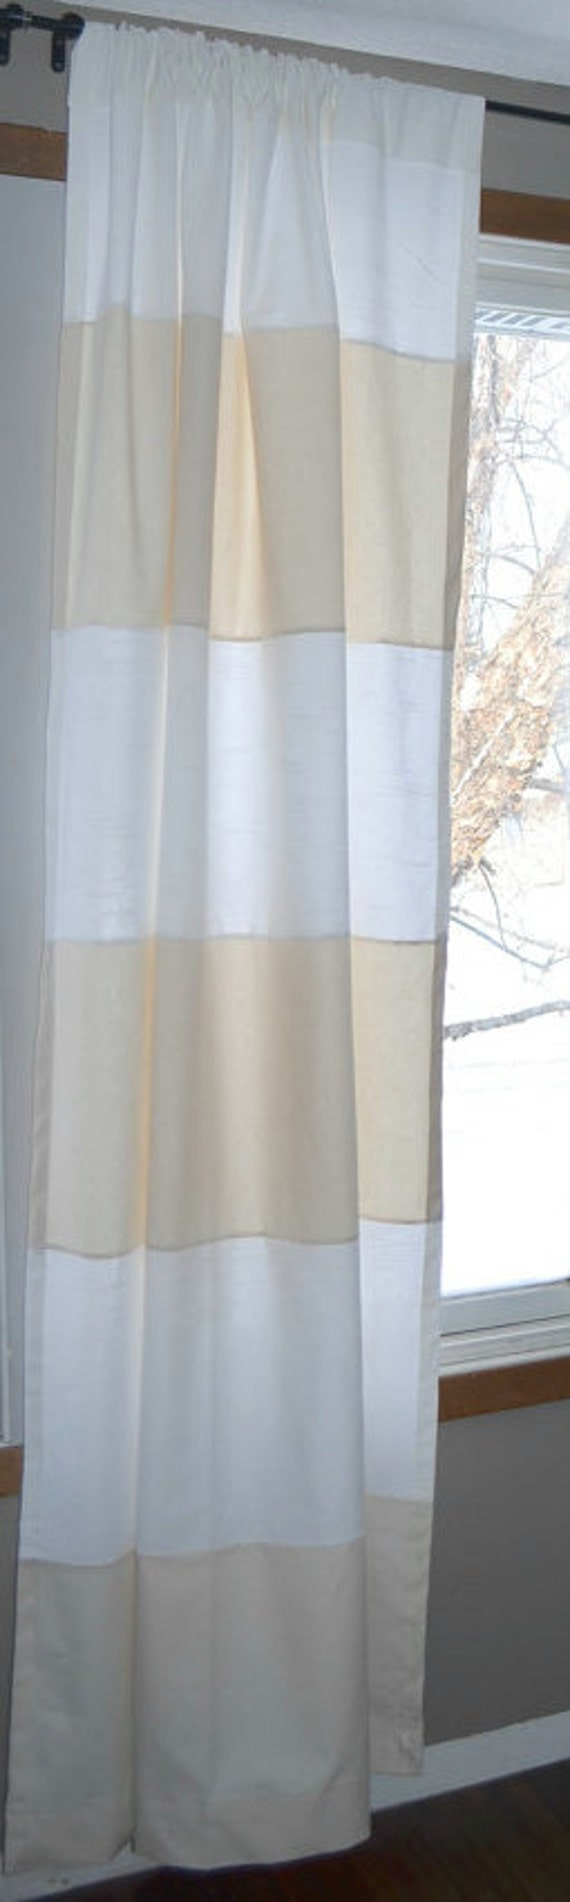 Cream And White Custom Striped Curtains Stripes Color